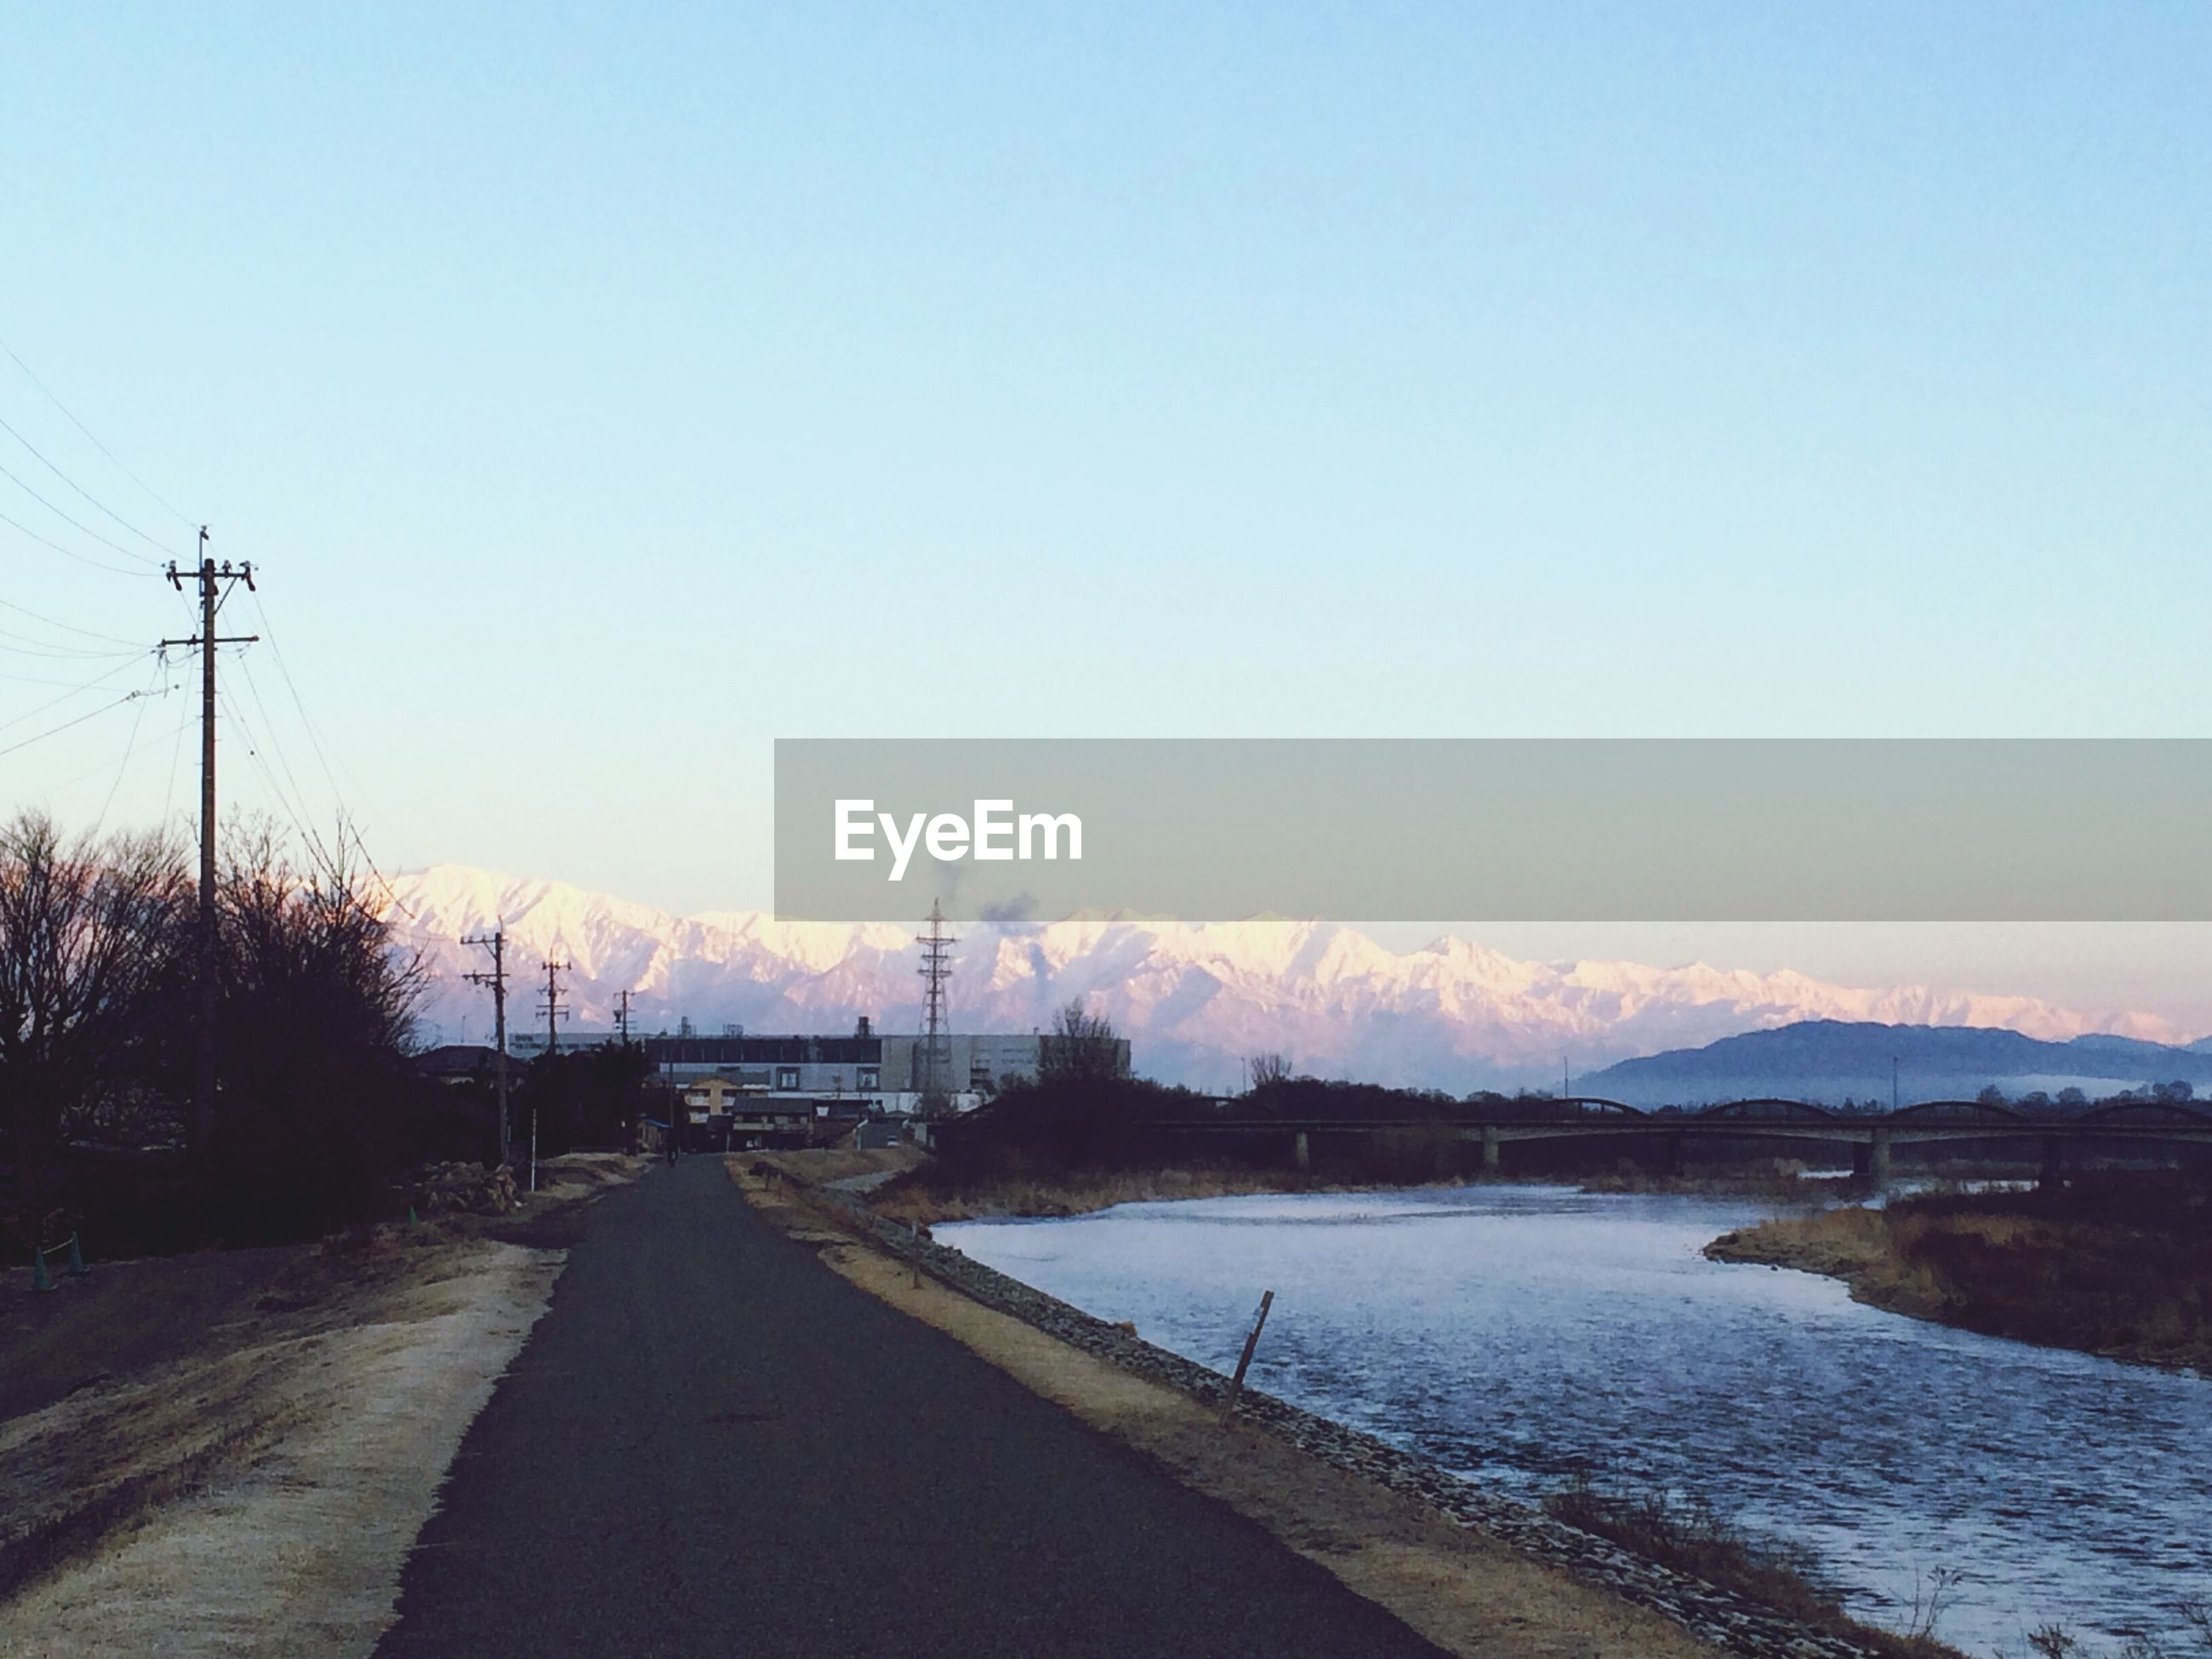 clear sky, copy space, road, transportation, tranquility, the way forward, tranquil scene, water, landscape, electricity pylon, nature, scenics, beauty in nature, mountain, outdoors, sunset, no people, winter, diminishing perspective, street